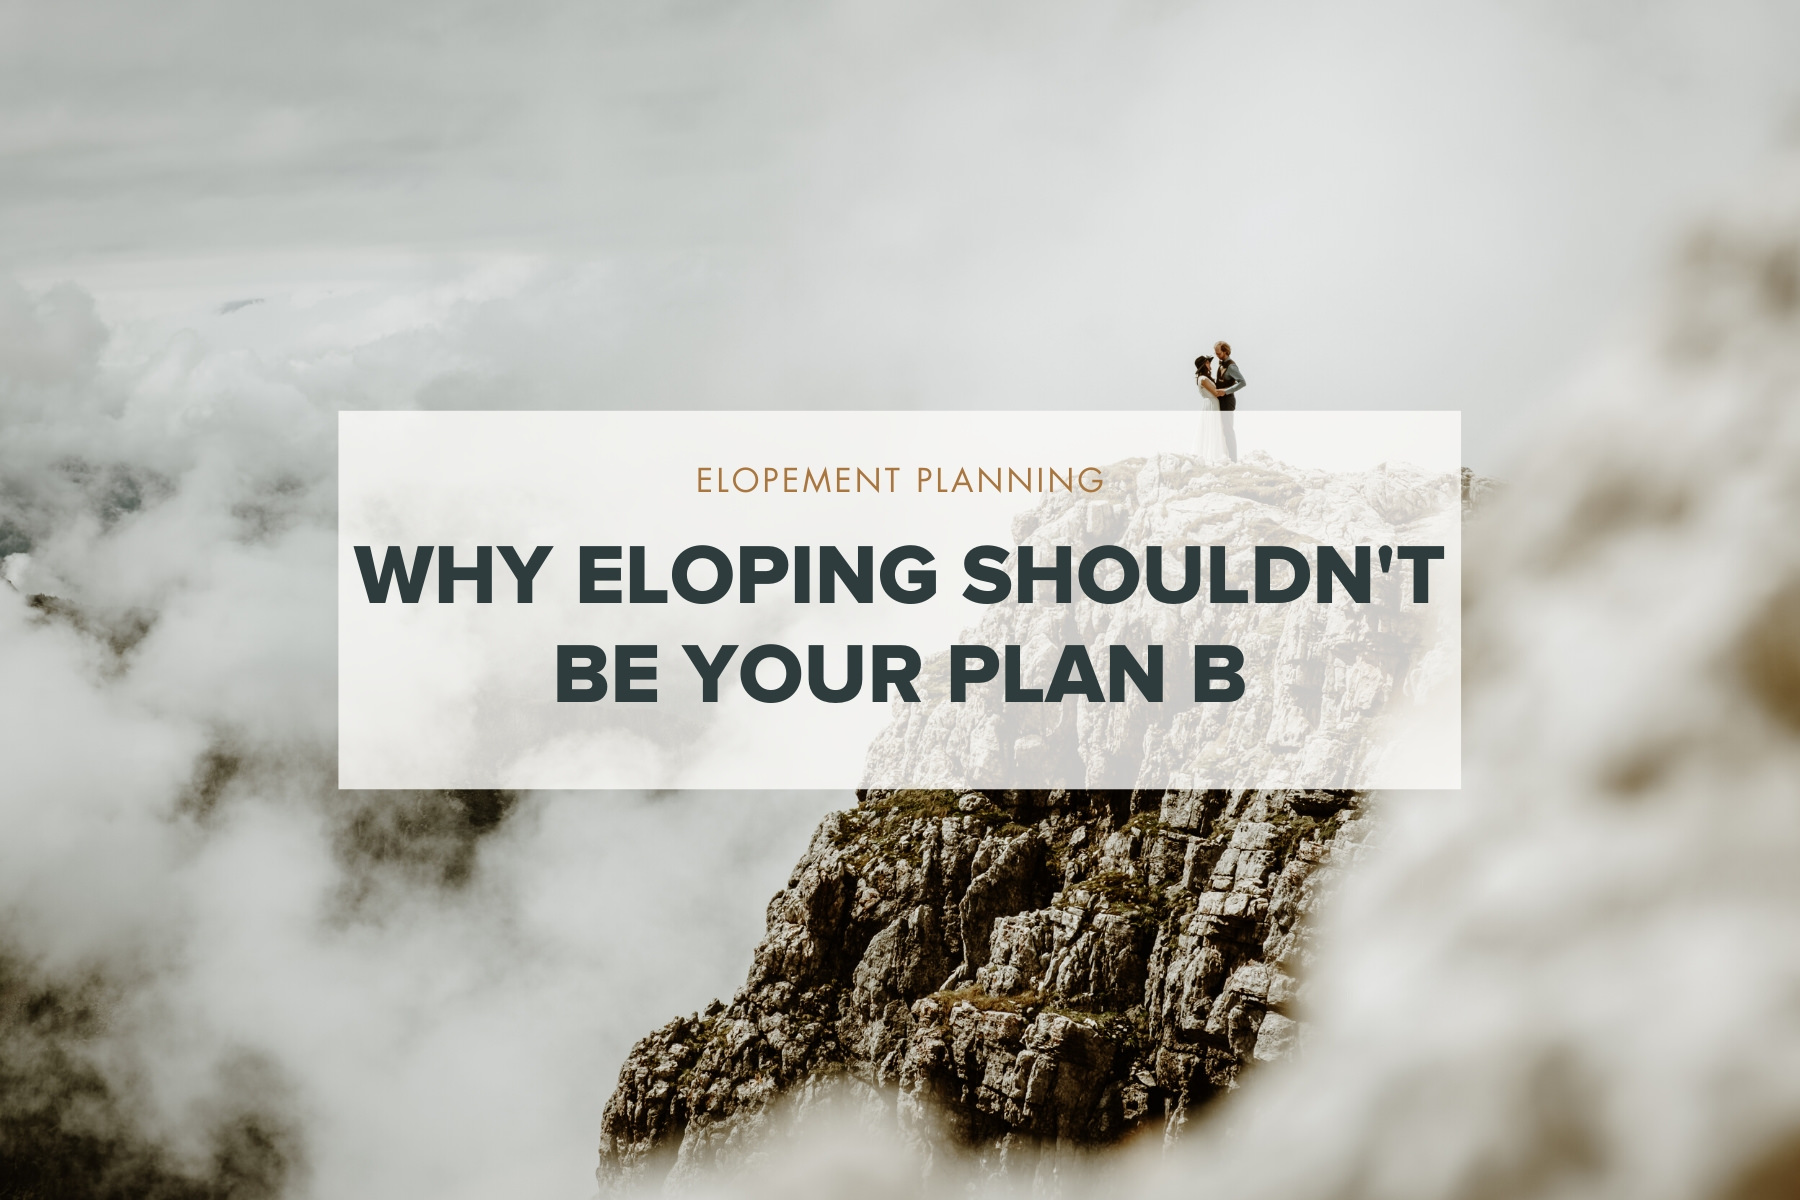 Why eloping shouldn't be your plan B blog post